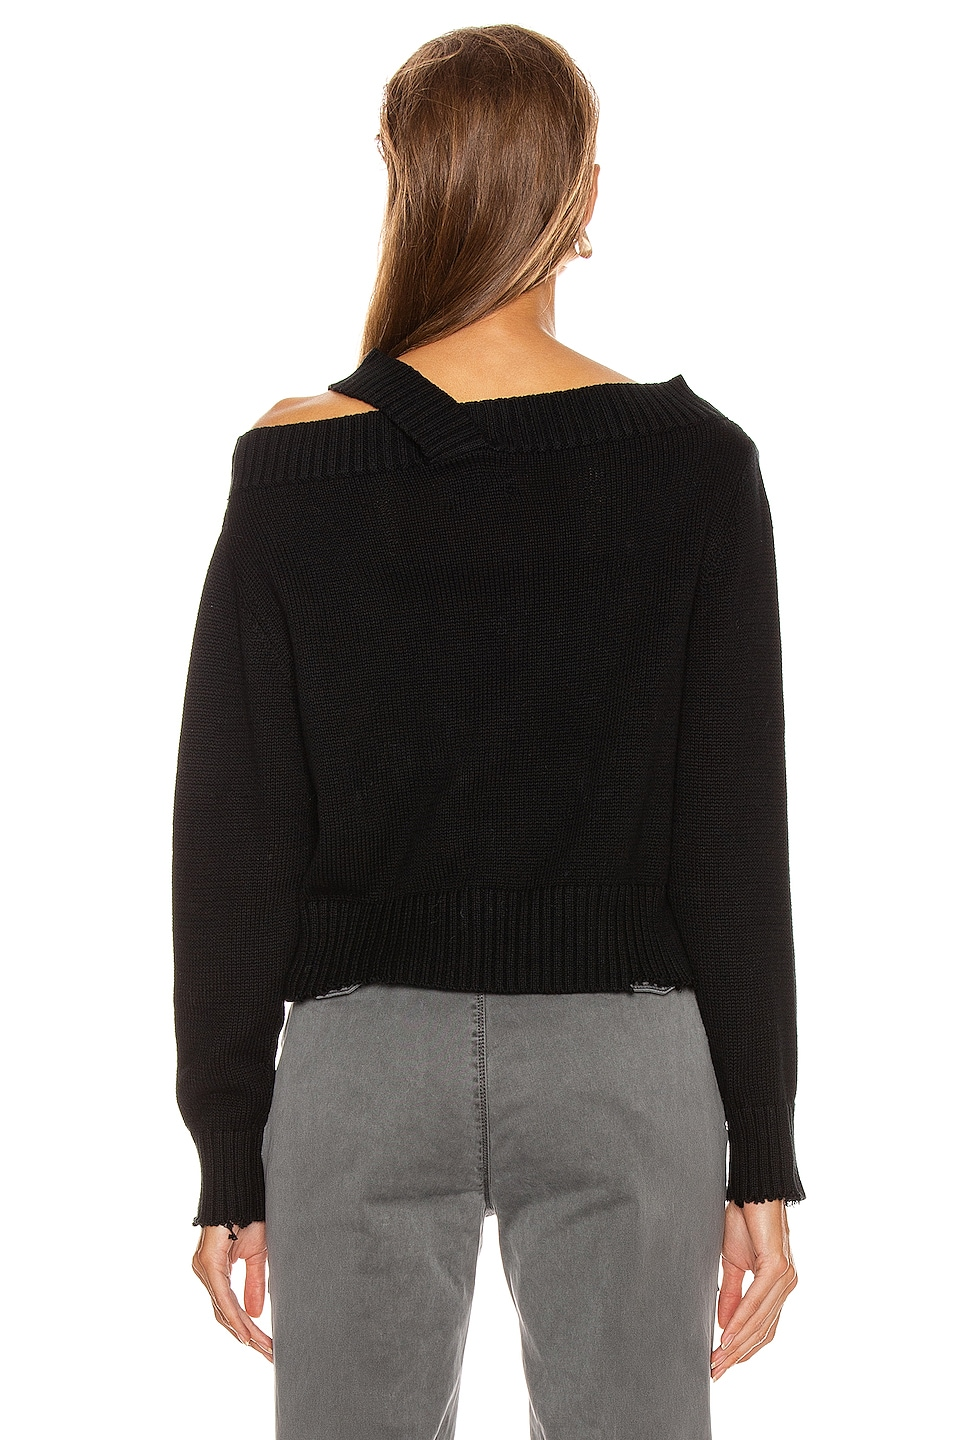 Image 4 of RtA Beckett Sweater in Black Speck